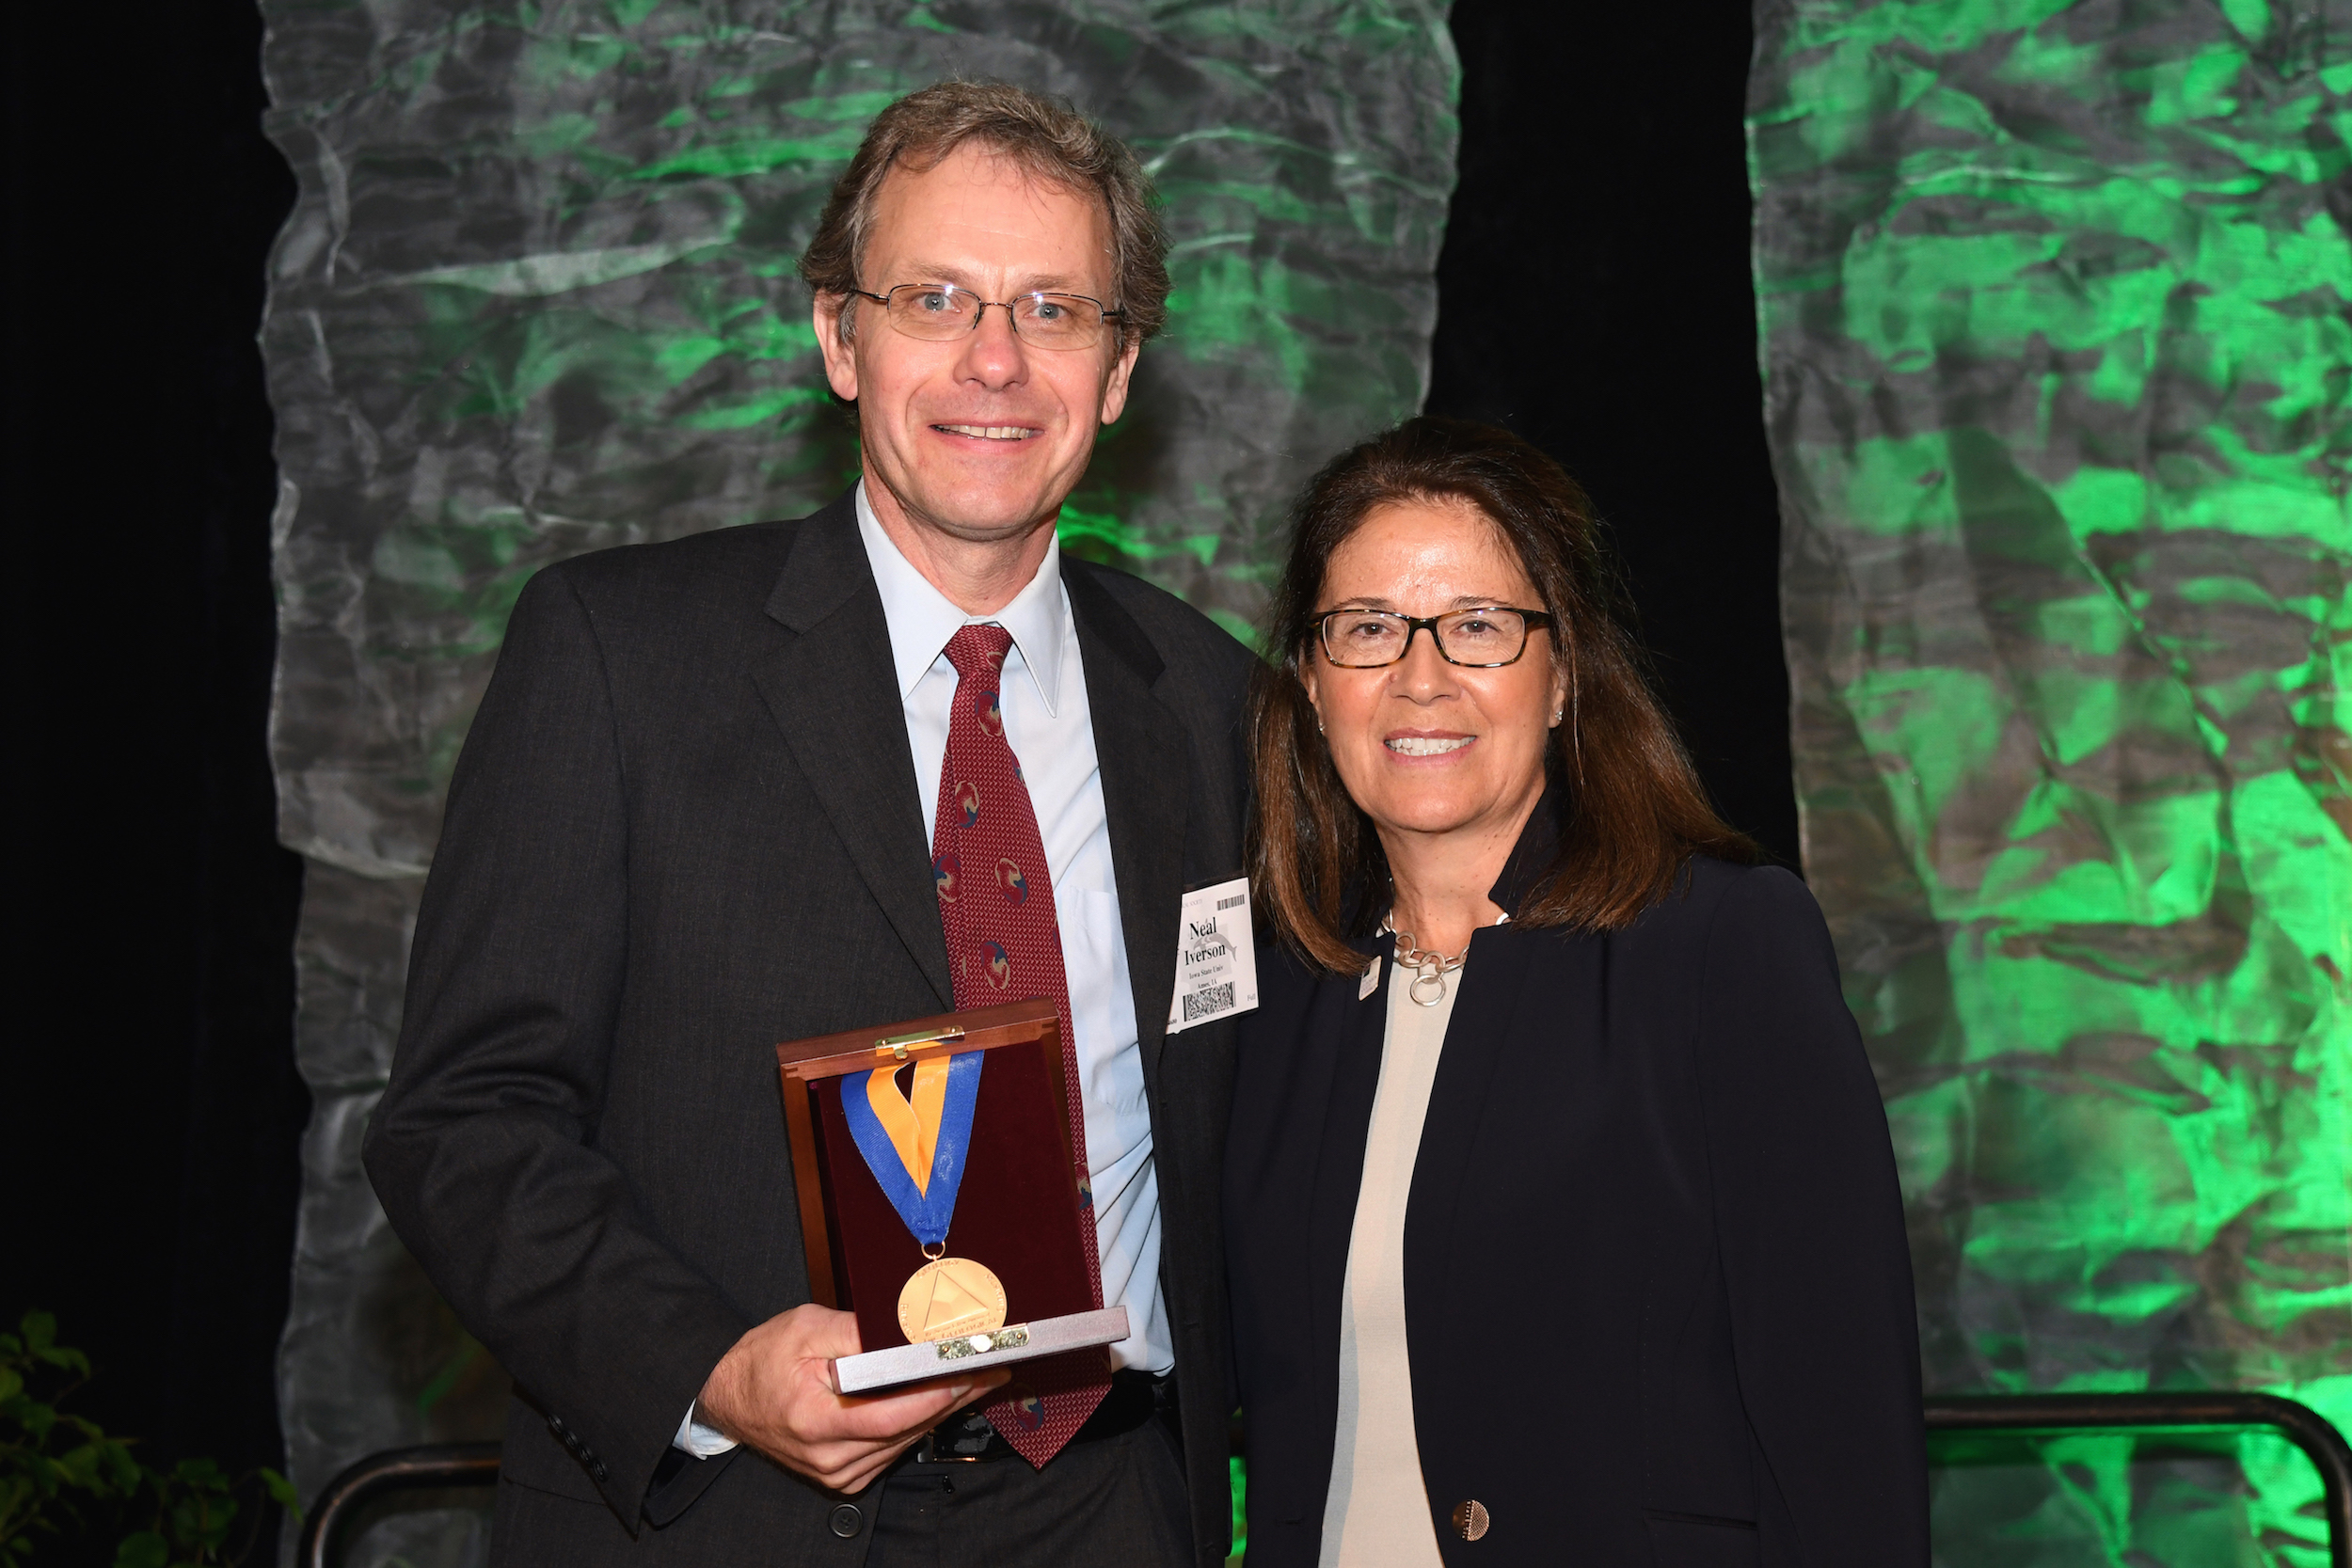 Neal Iverson receives the Arthur L. Day Medal from the Geological Society of America. (Contributed Photo.)